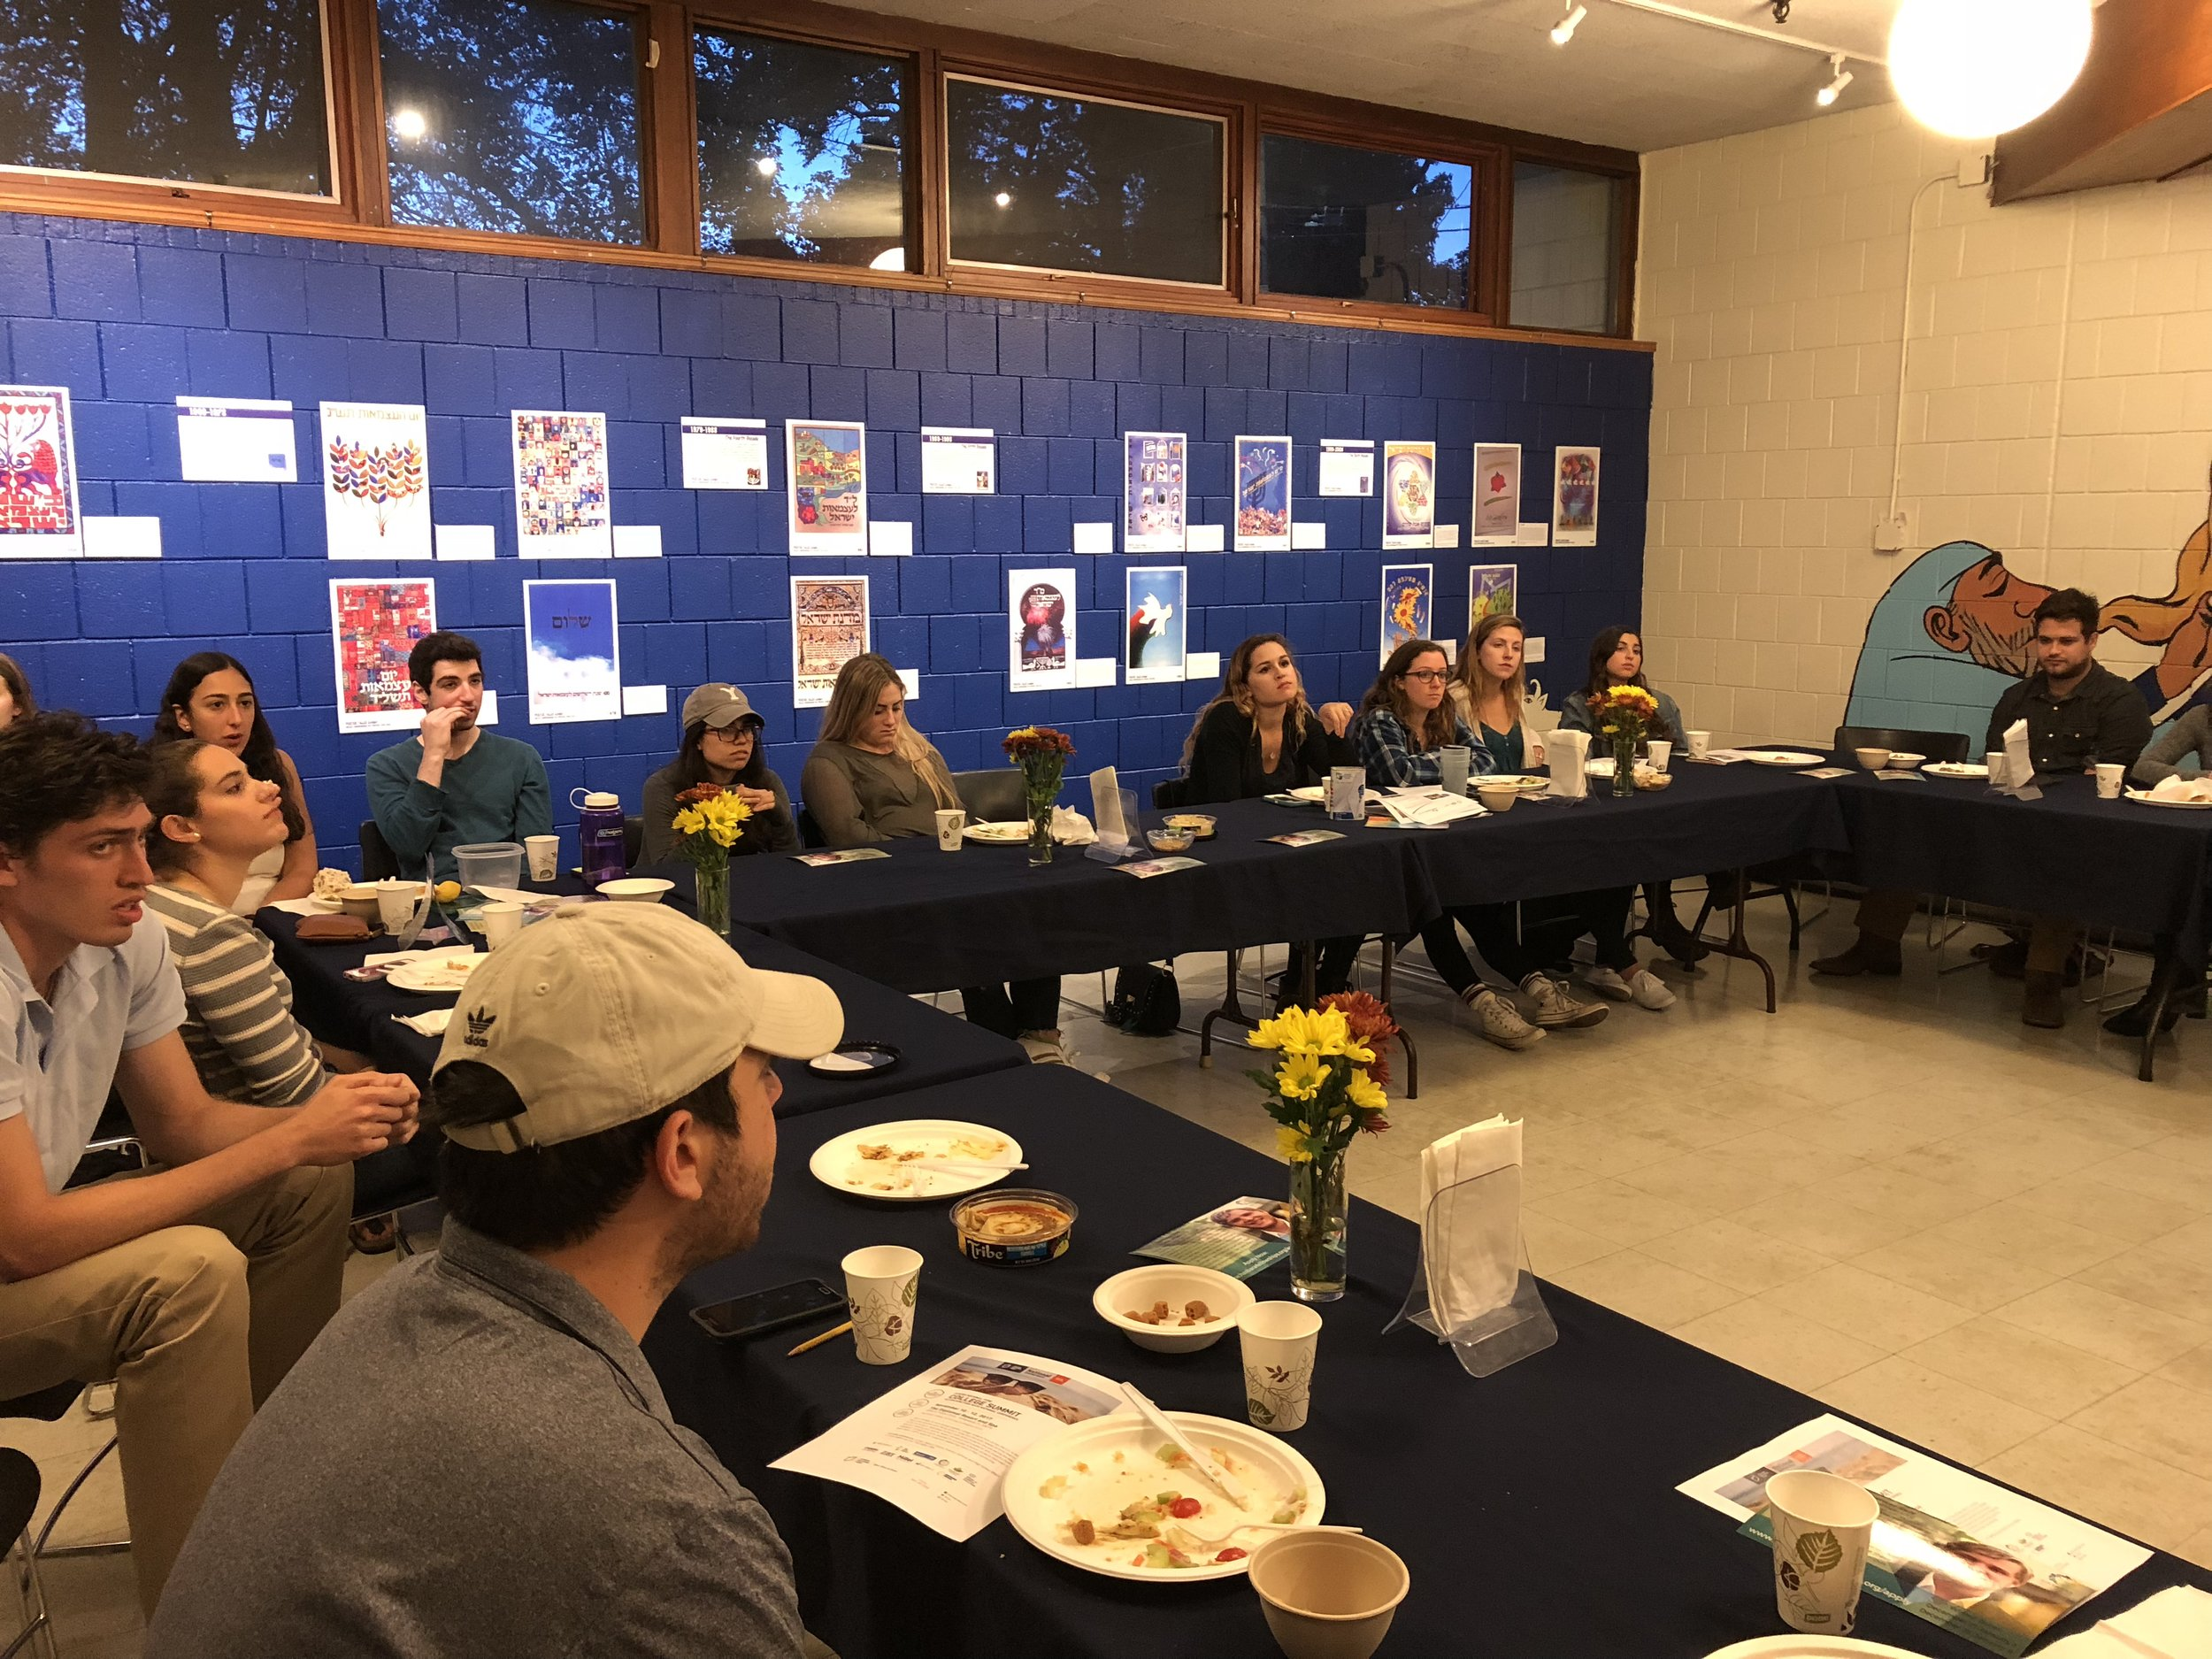 Students gathered at UMASS - Amherst for a Leadership Dinner with representatives from different communities and organizations on campus.